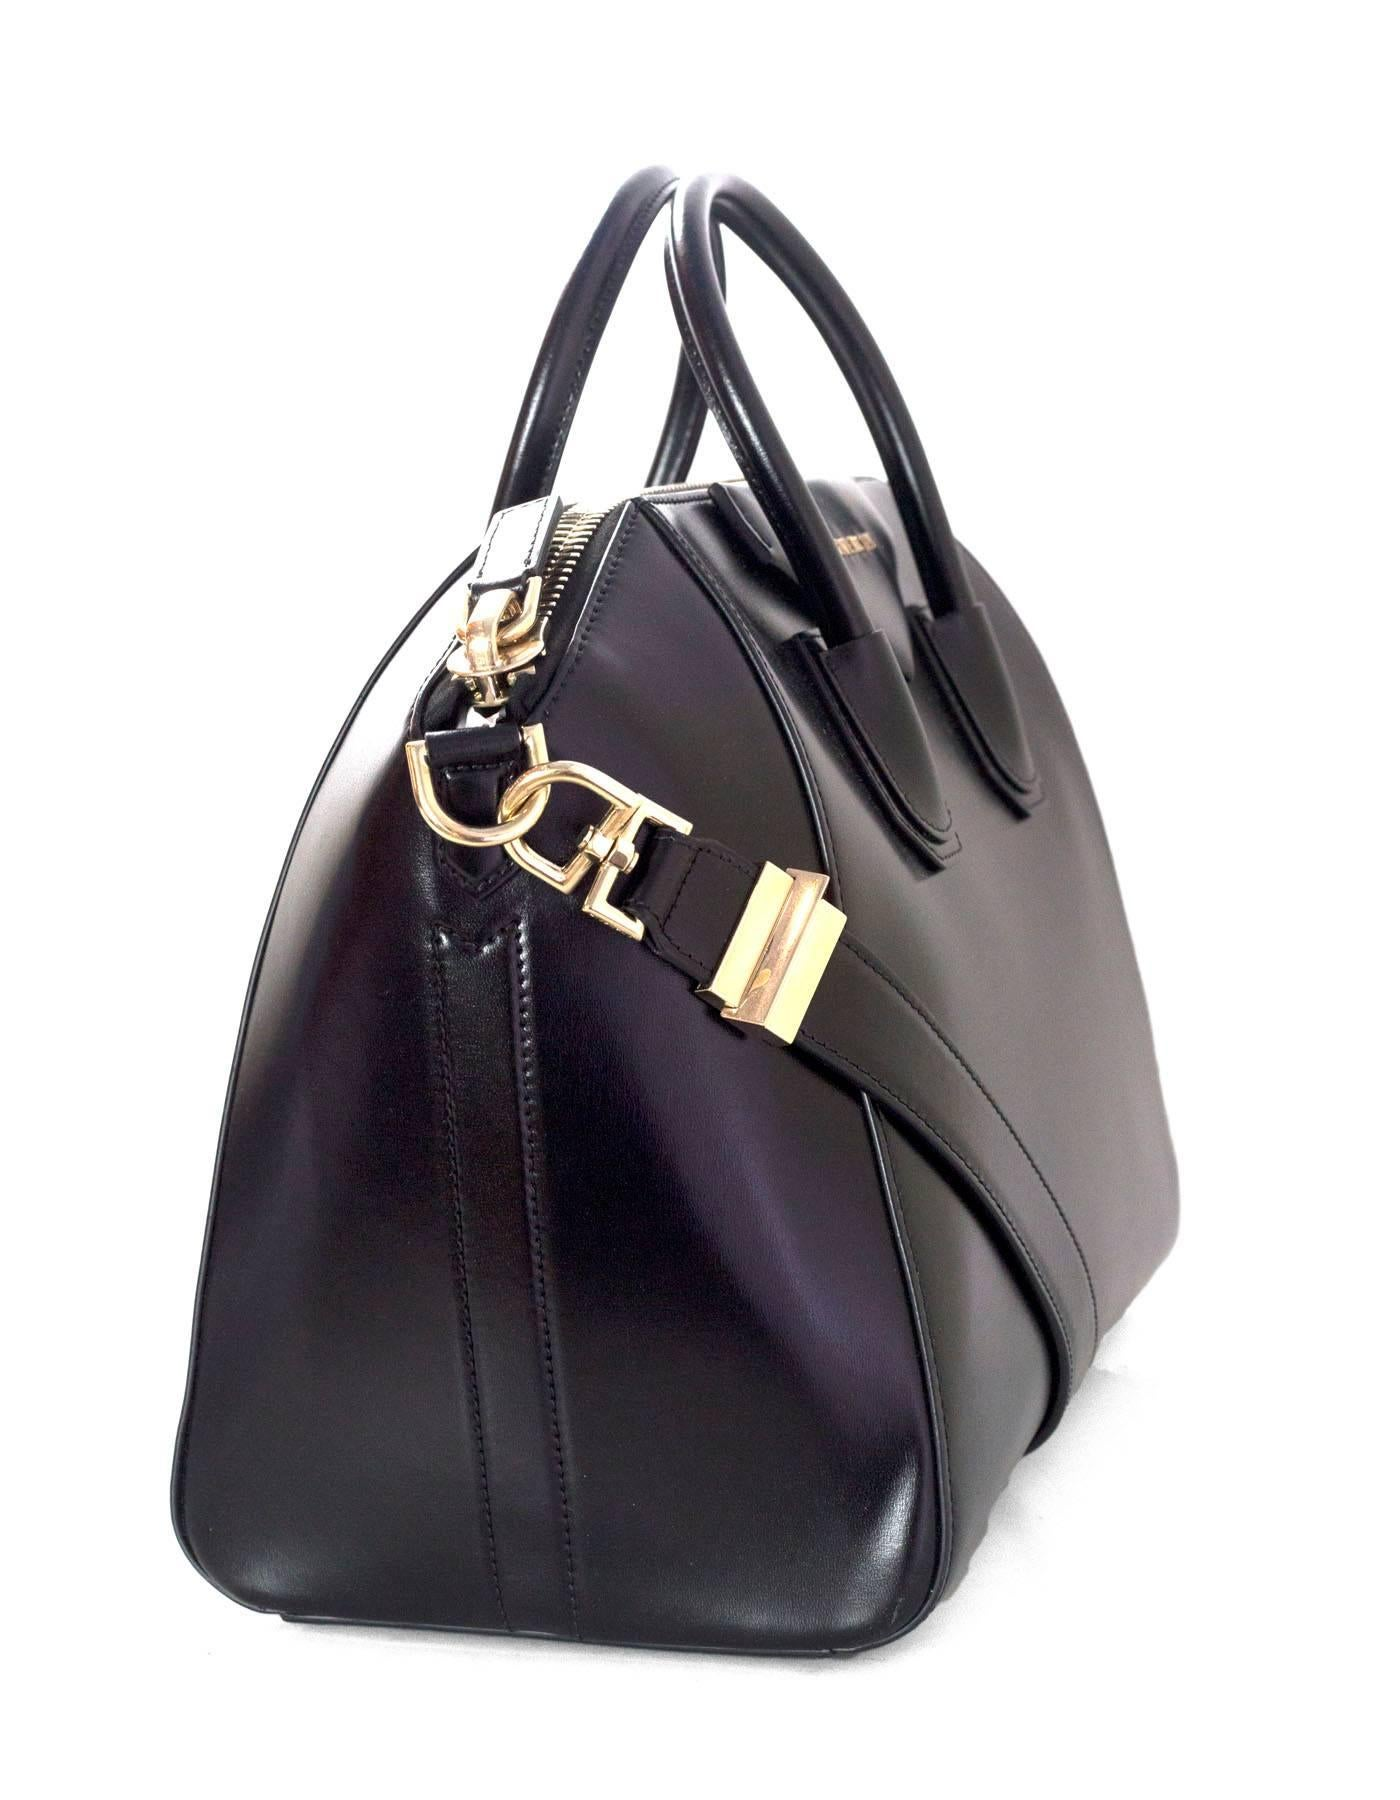 1ed6bb666a Givenchy Black Shiny Lord Calfskin Leather Medium Antigona Tote Bag For  Sale at 1stdibs